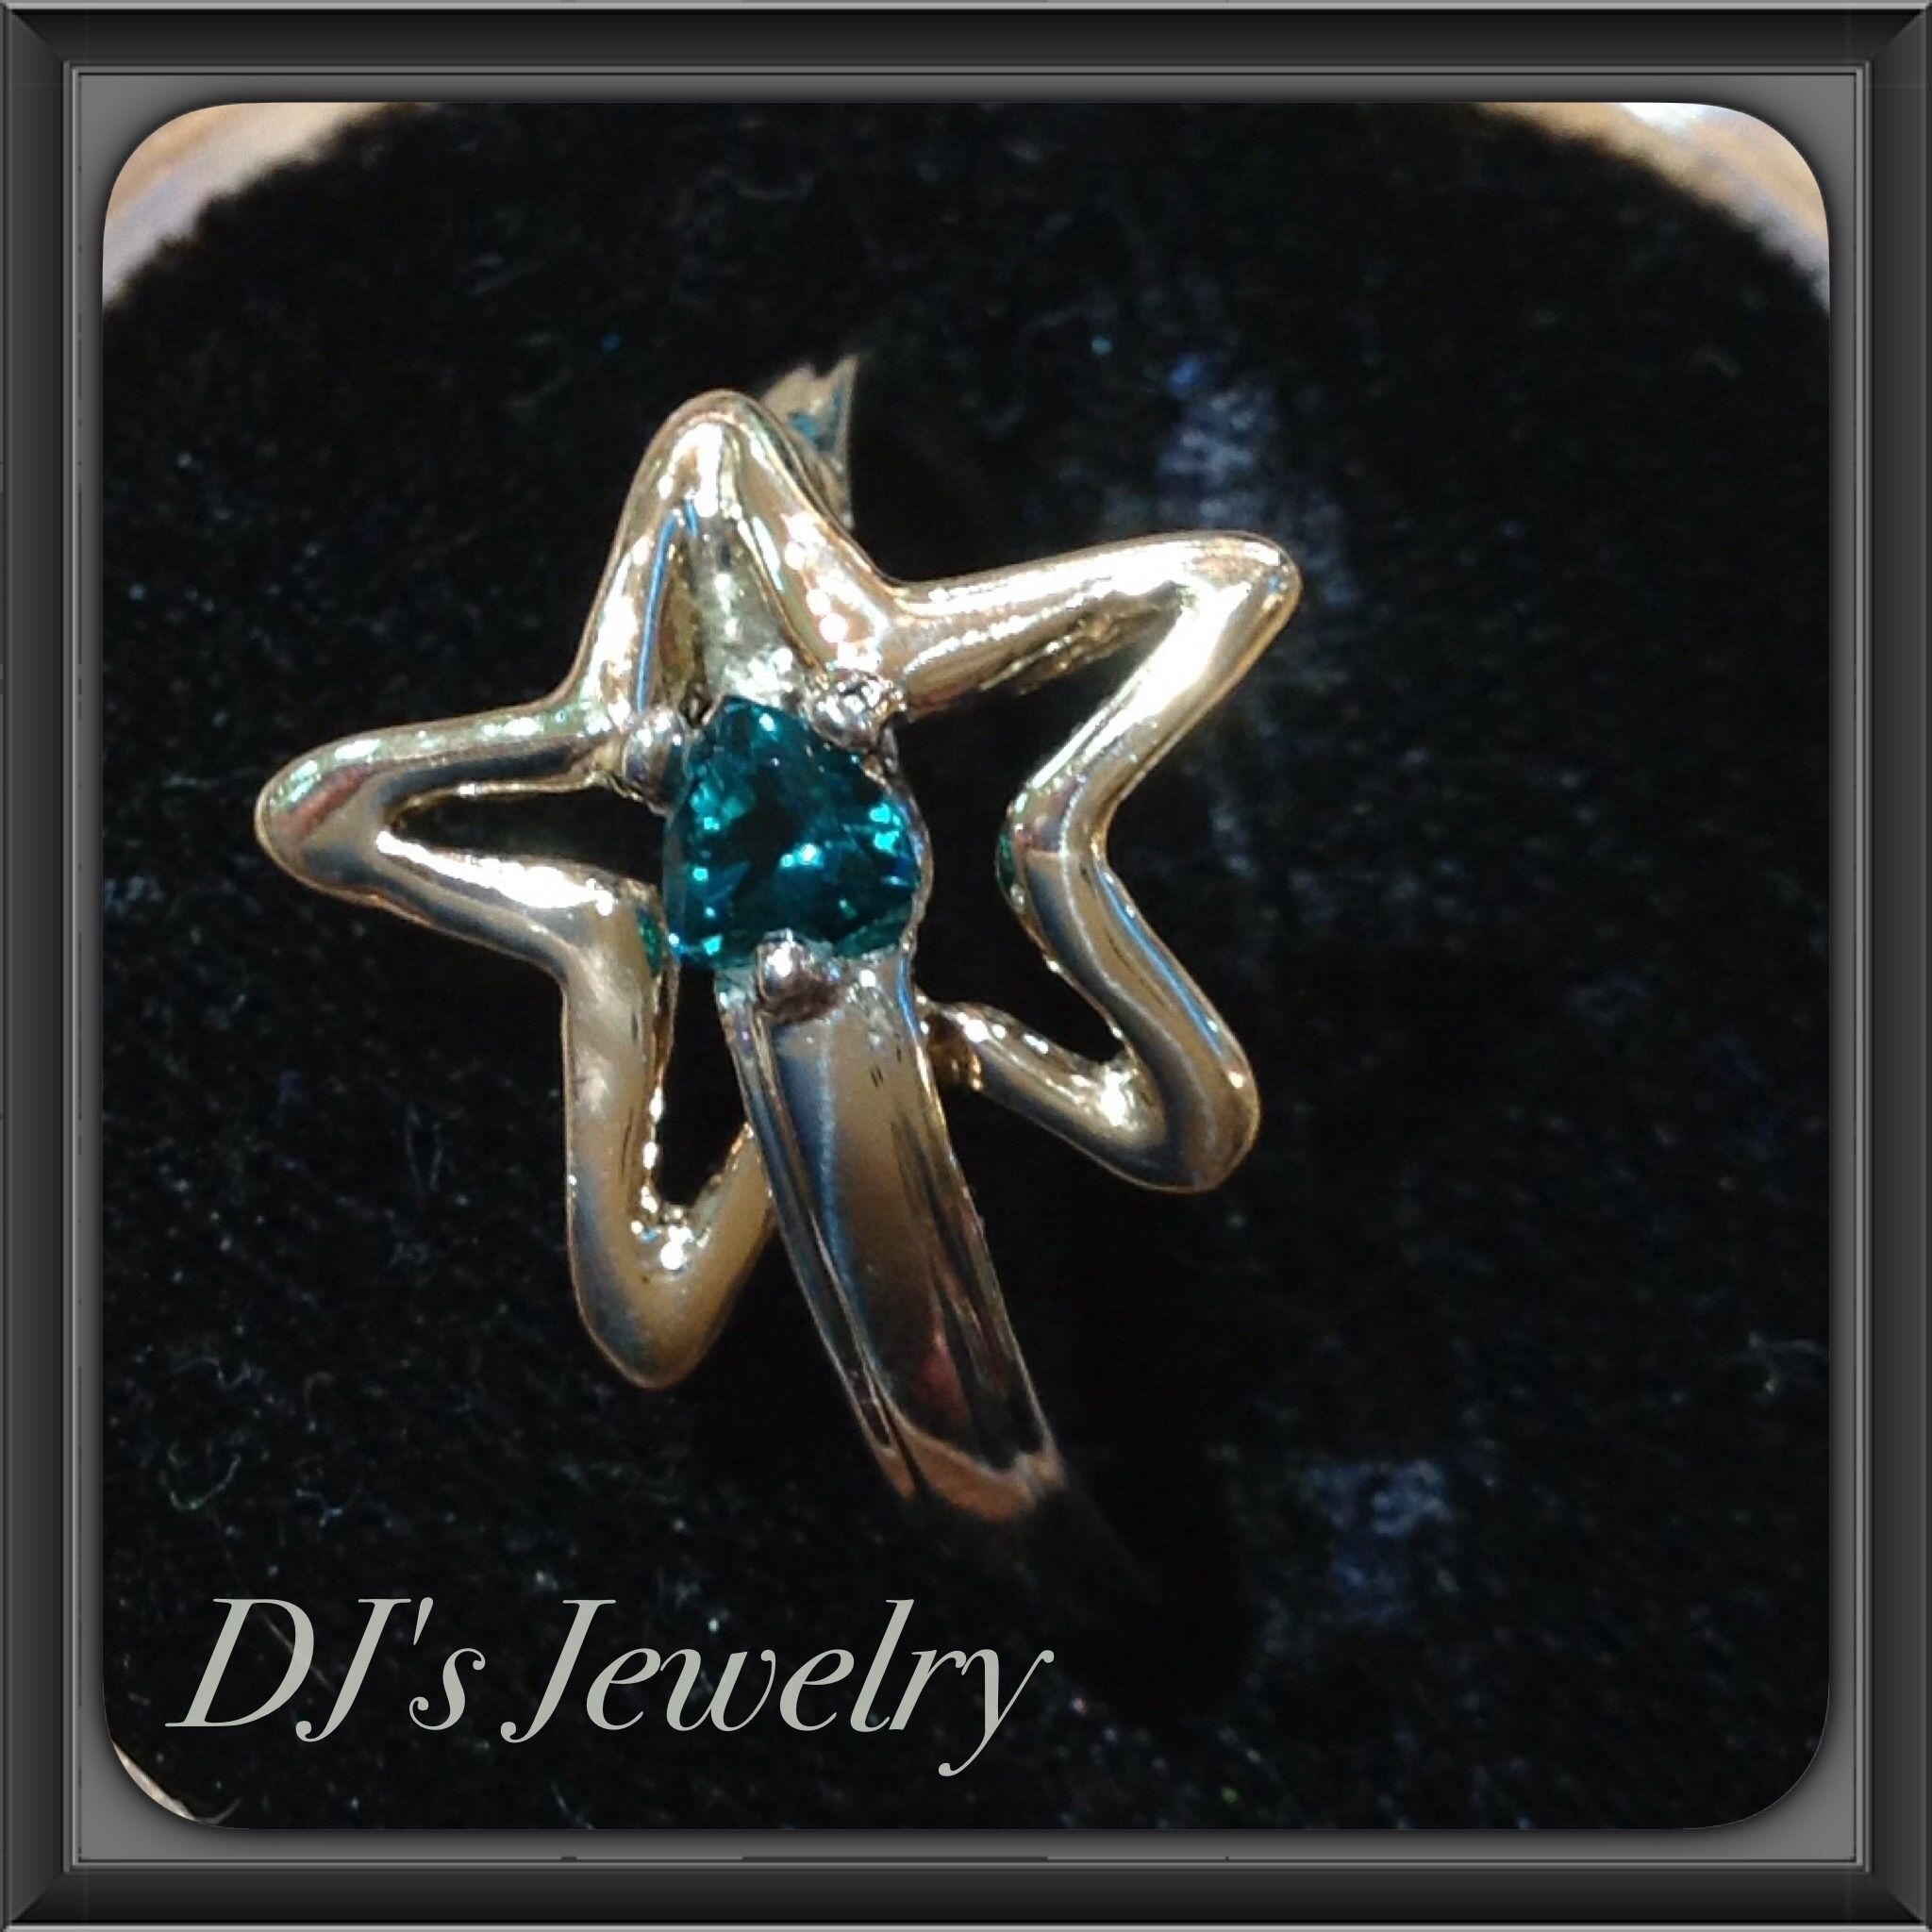 DJs Custom Designs 20150515192907imagejpg brand name